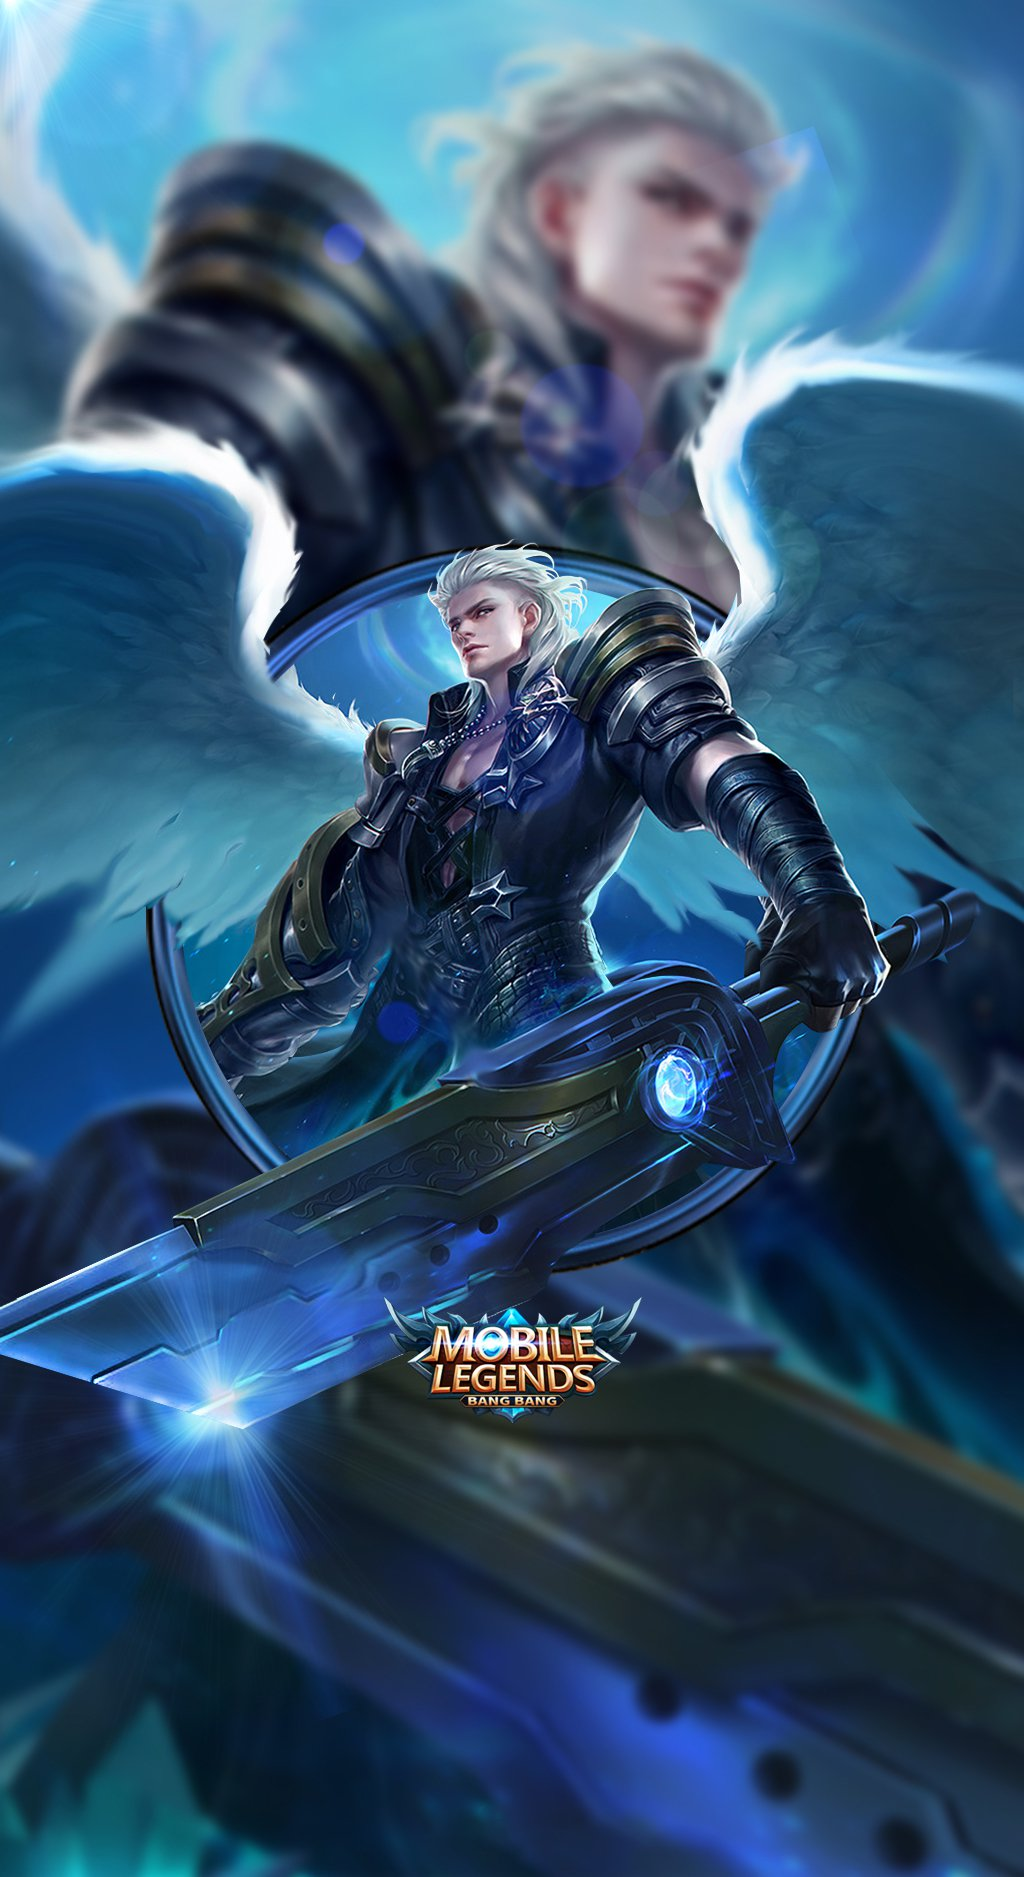 260 Wallpaper Mobile Legends HD Terbaru 2018 TERLENGKAP